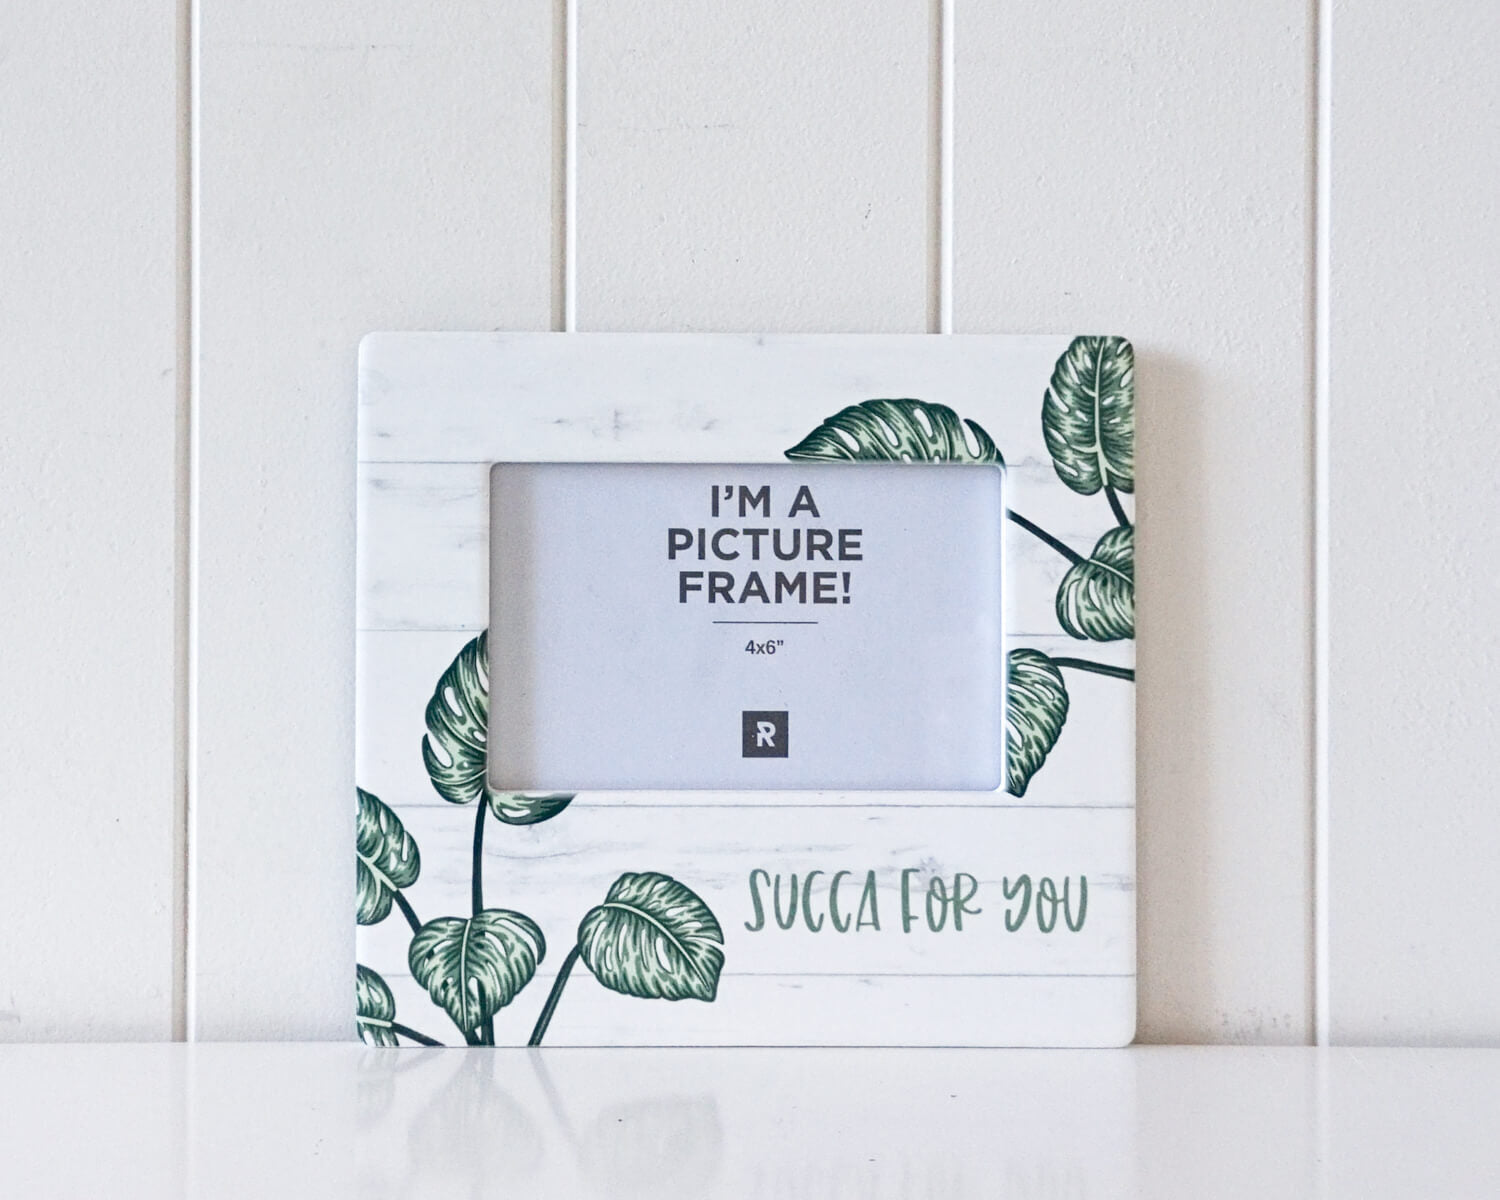 Succa For You Photo Frame